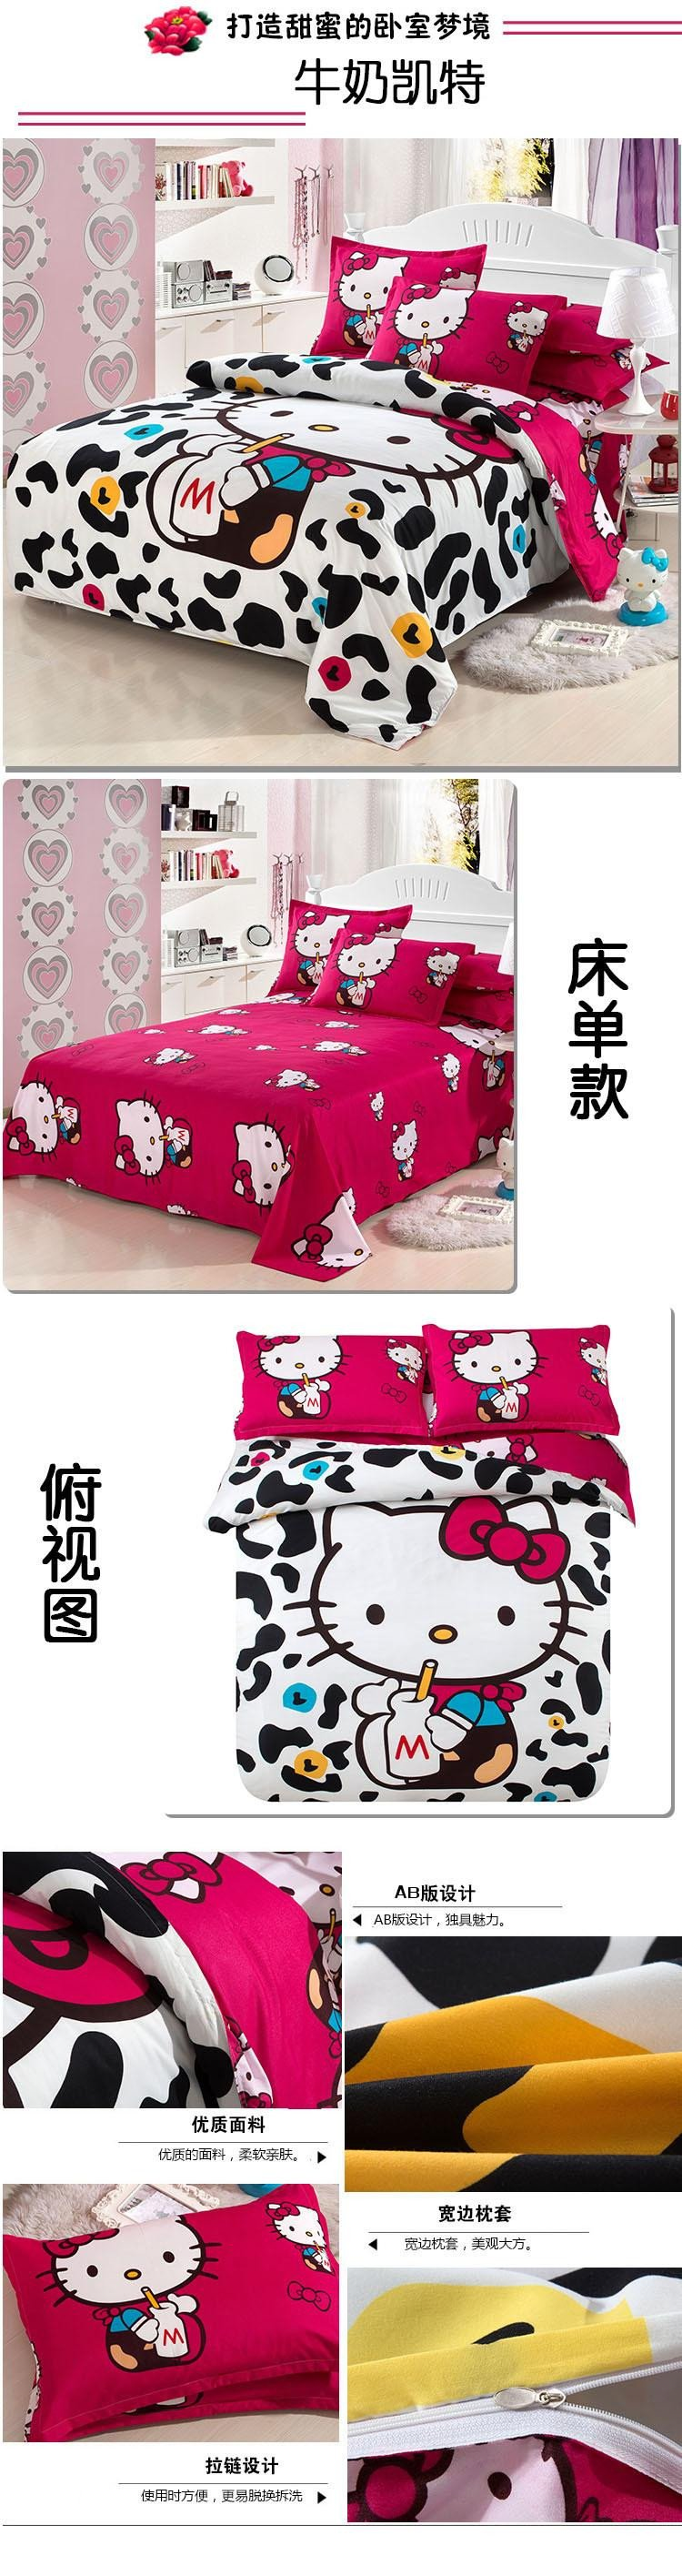 Hello Kitty Bedroom Set Inspirational Cotton Hello Kitty Home Textile Reactive Print Bedding Sets Cartoon Bed Sheet Duvet Cover Set Bedding Set Pink Duvet forters and Bedding From